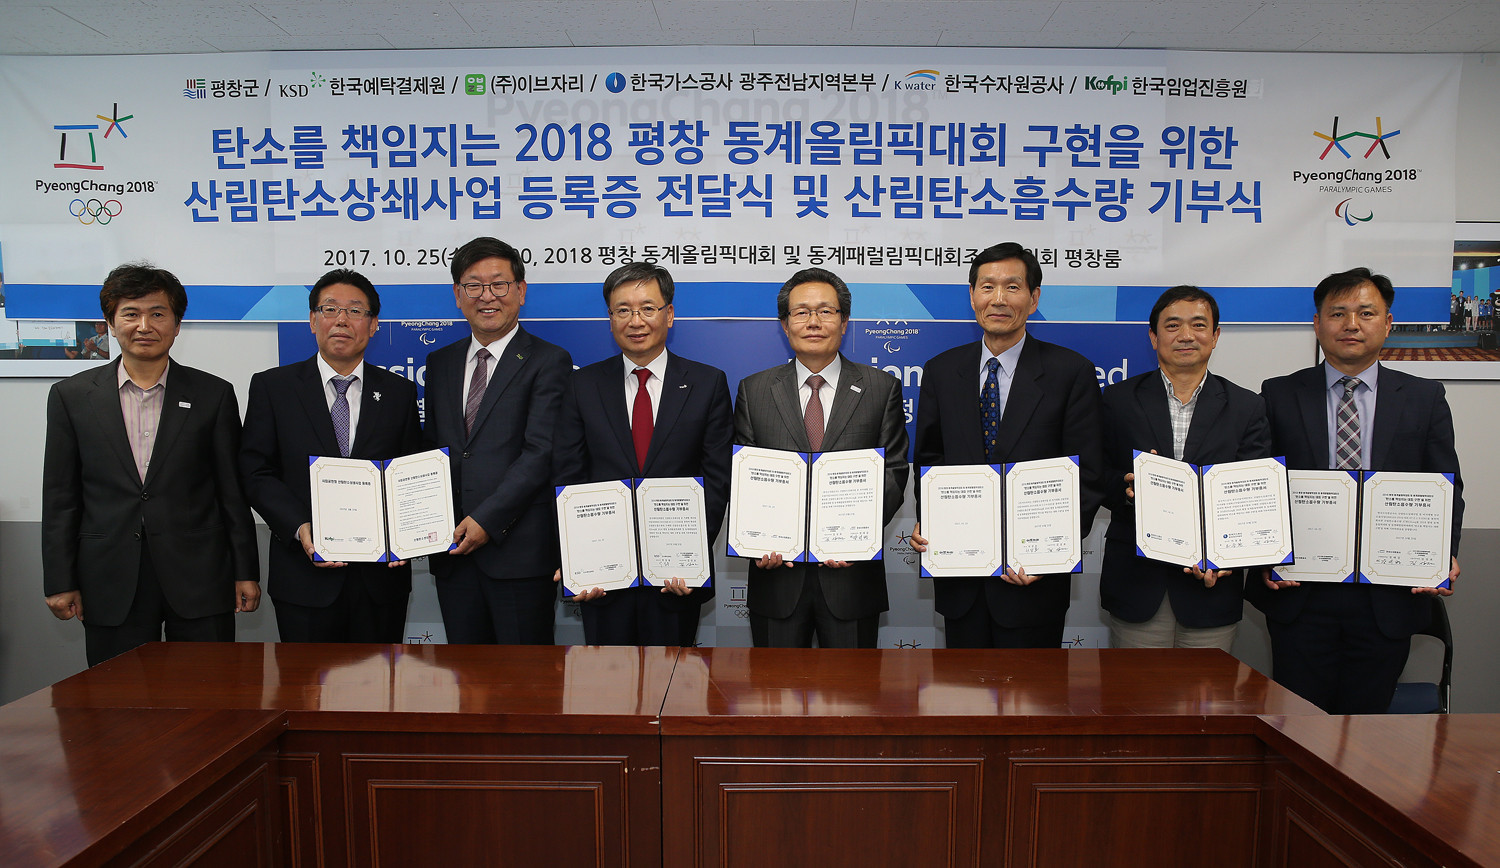 Members of the Organising Committee of Pyeongchang 2018 with representatives of Korea Forest Service, as they announce plans to reduce greenhouse gas emissions from the Games ©Pyeongchang 2018